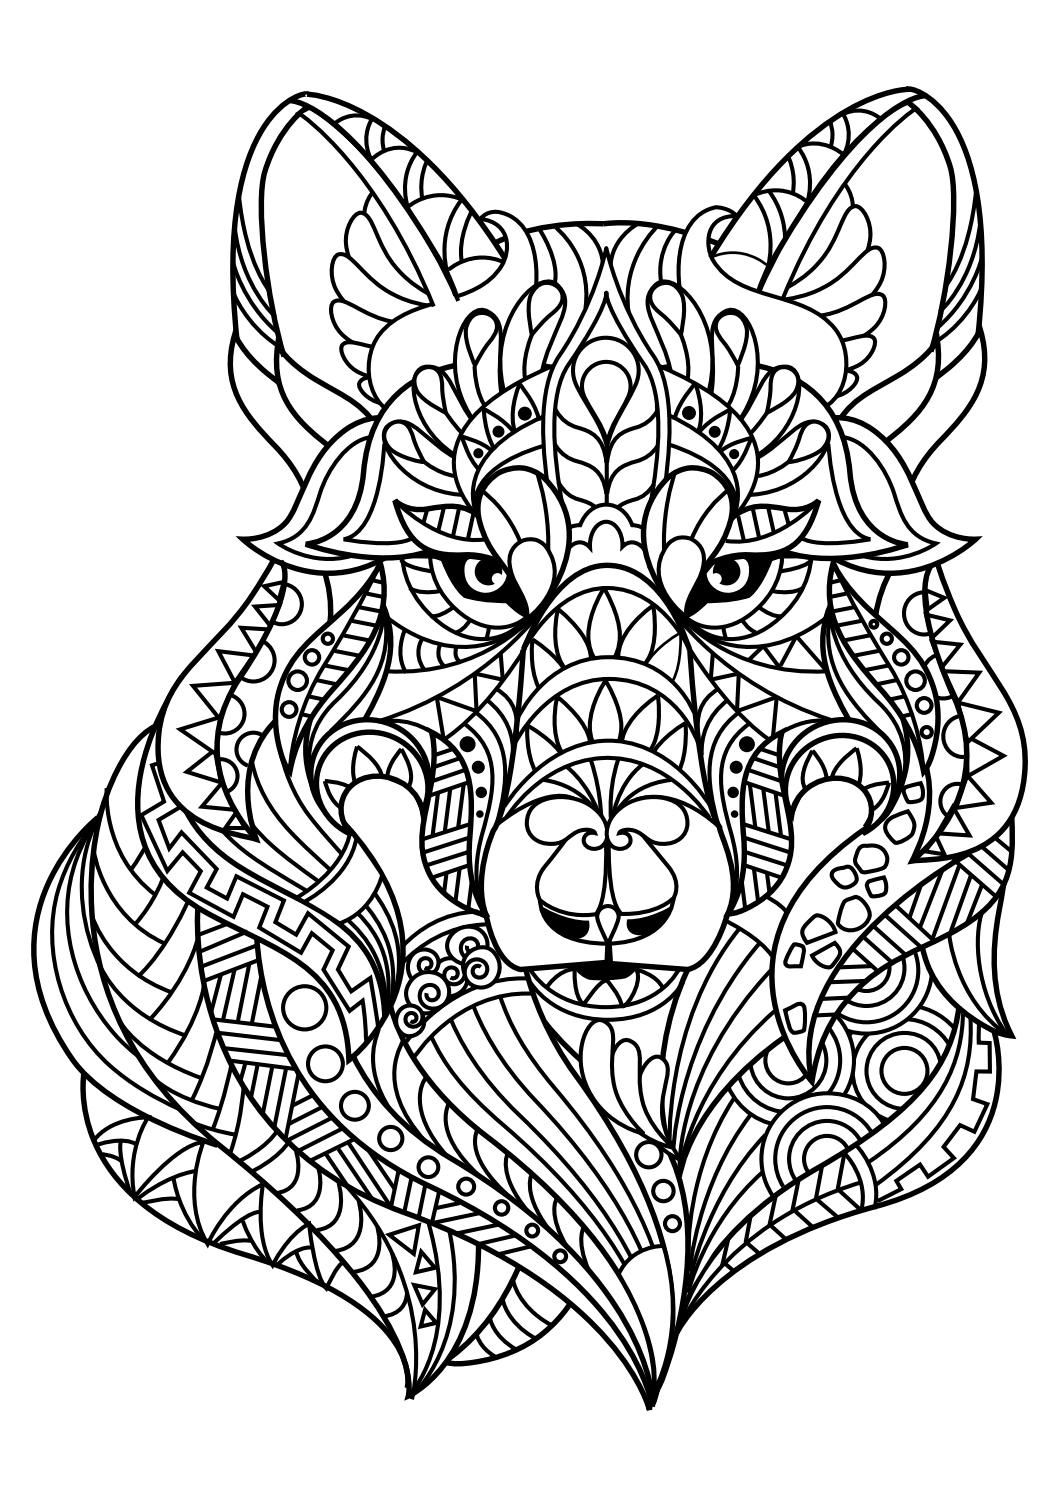 animal coloring pages pdf coloring animals mandala coloring pages horse coloring pages. Black Bedroom Furniture Sets. Home Design Ideas